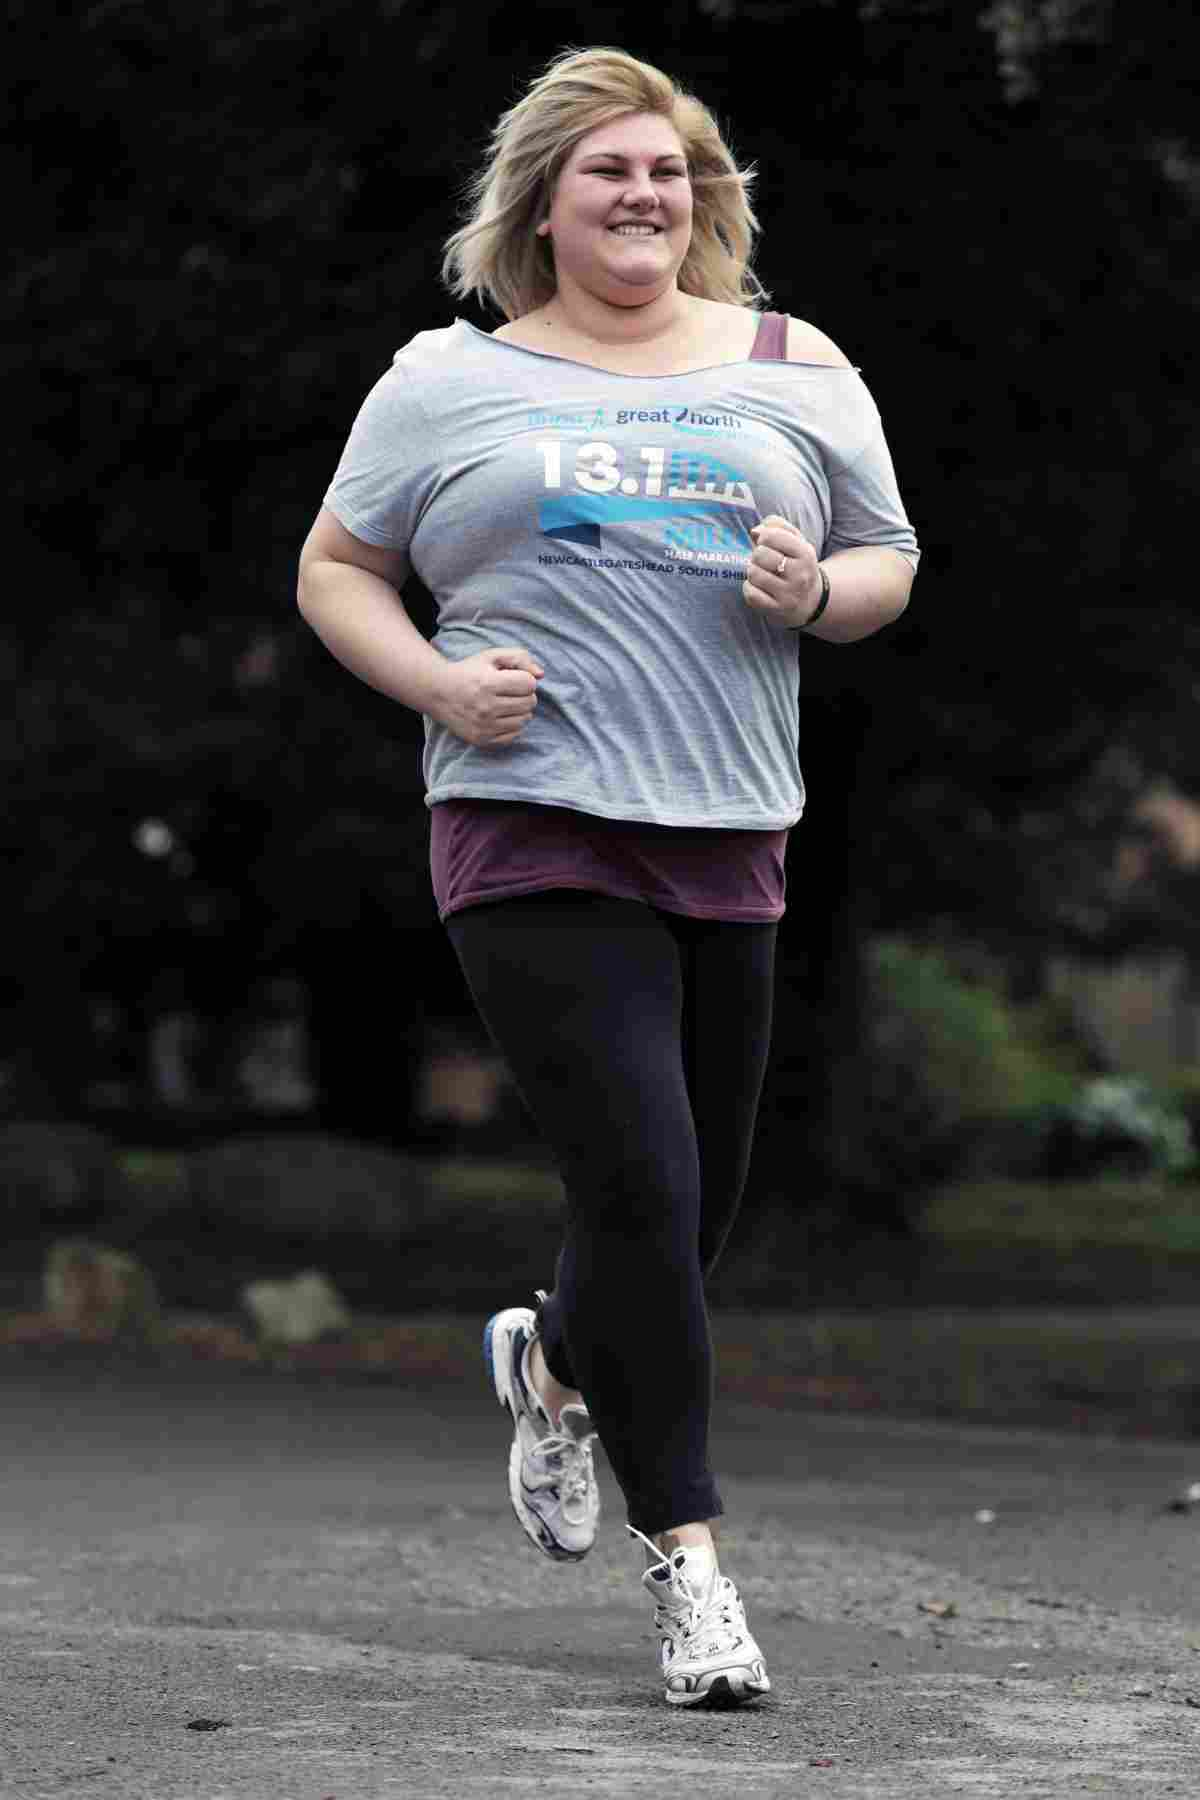 Fat chicks can run too, according to size 20 marathon runner